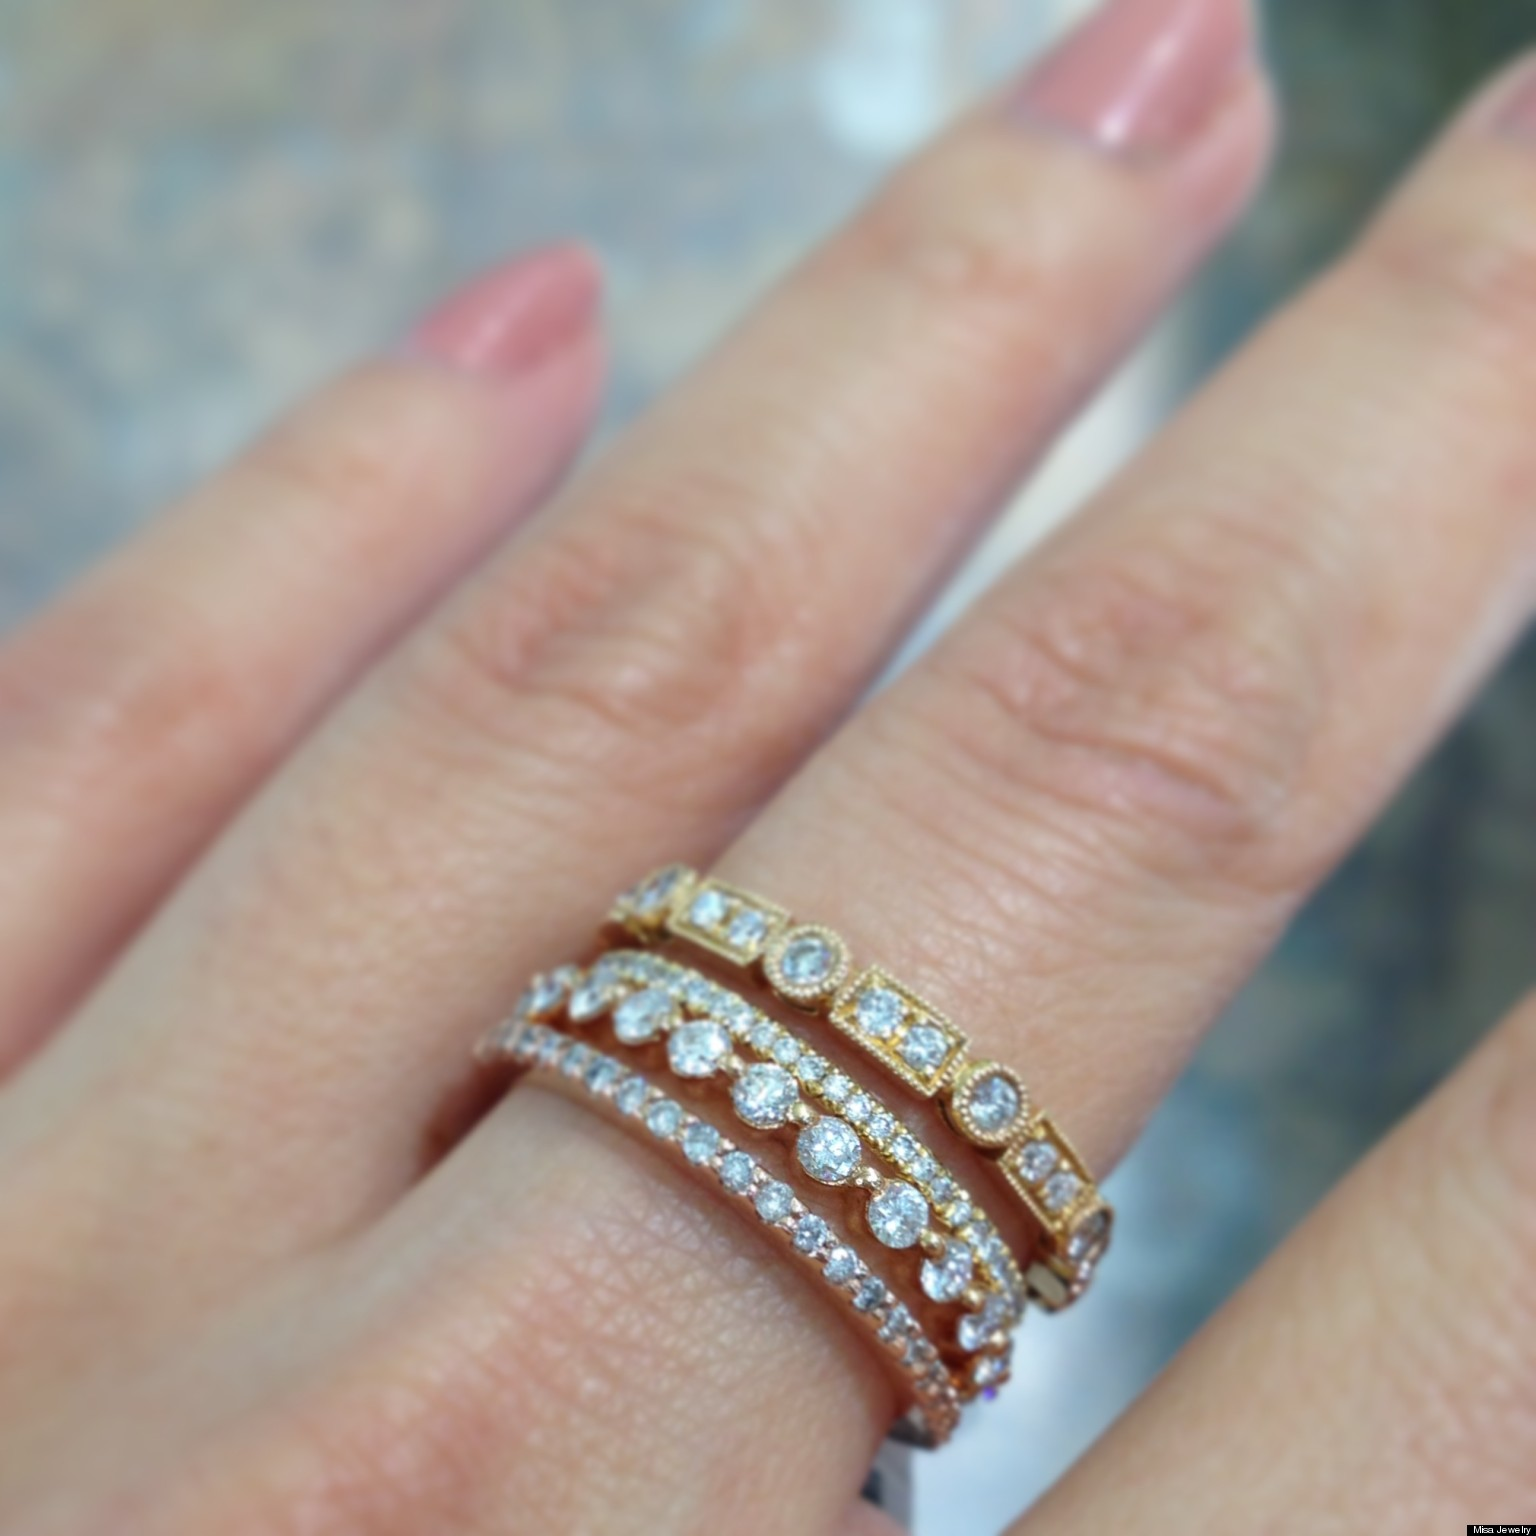 stackable wedding bands n sports wedding bands Stackable Wedding Bands Are One Of Our Favorite Jewelry Trends PHOTOS HuffPost